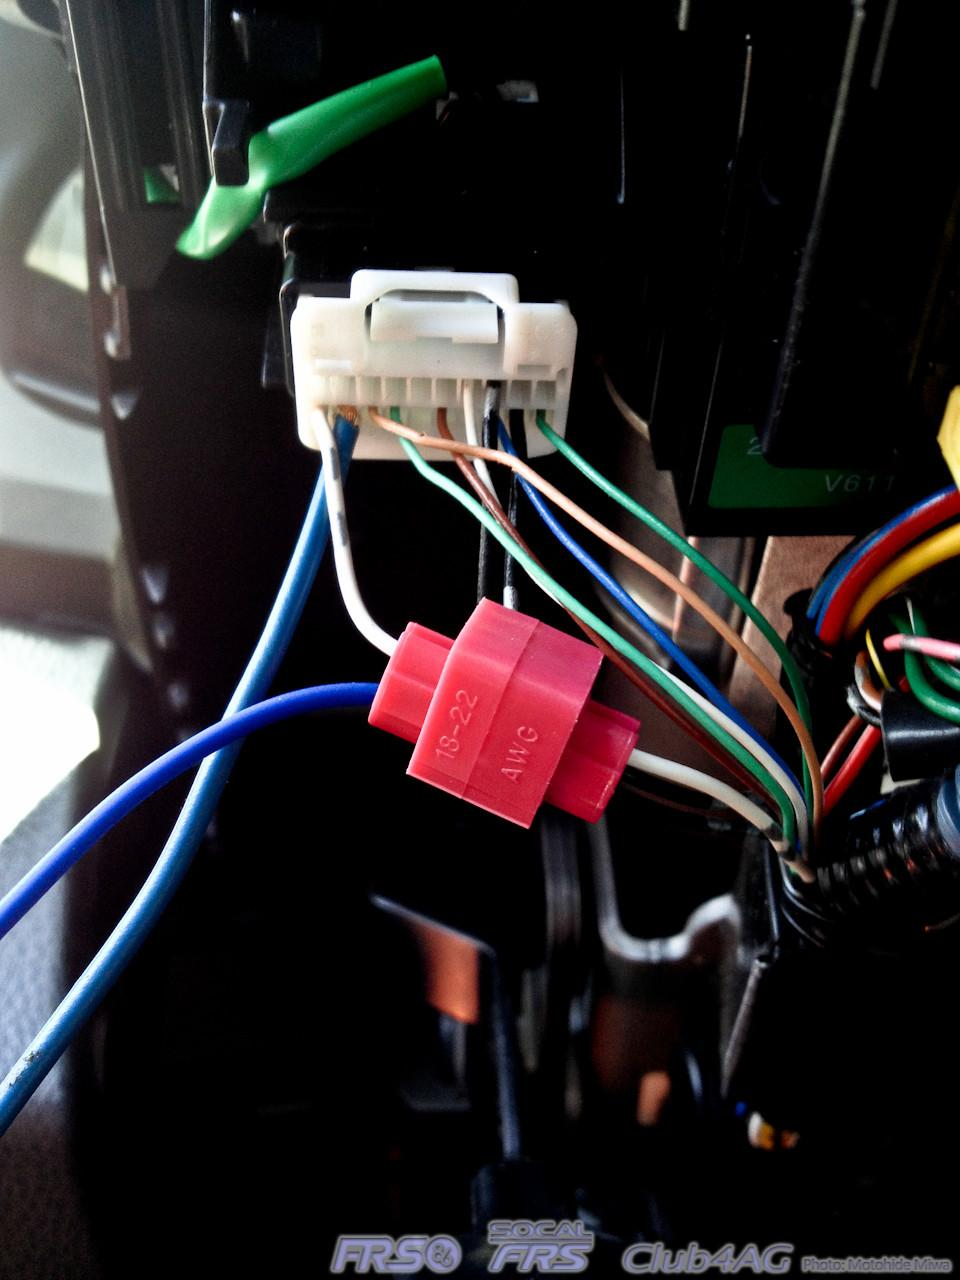 enabling automatic headlight circuit on scion fr s club4ag after connecting the pin 19 the last wire is the blue wire from the dei 545t the ground trigger wire this needs to go to the pin 20 where you see i